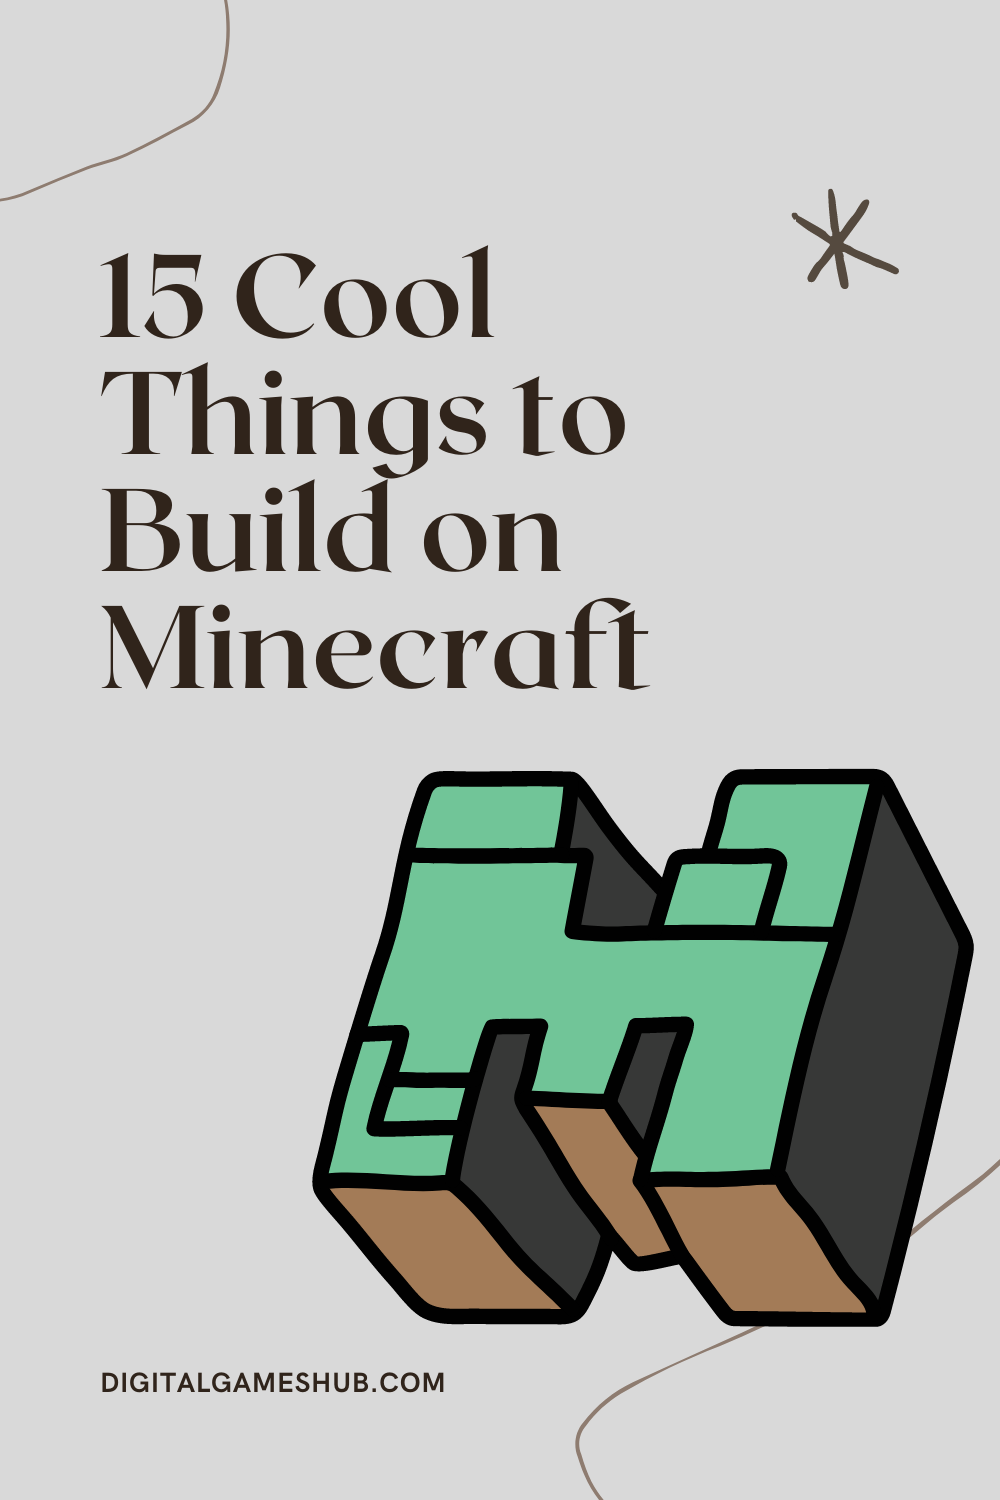 15 Cool Things to Build on Minecraft